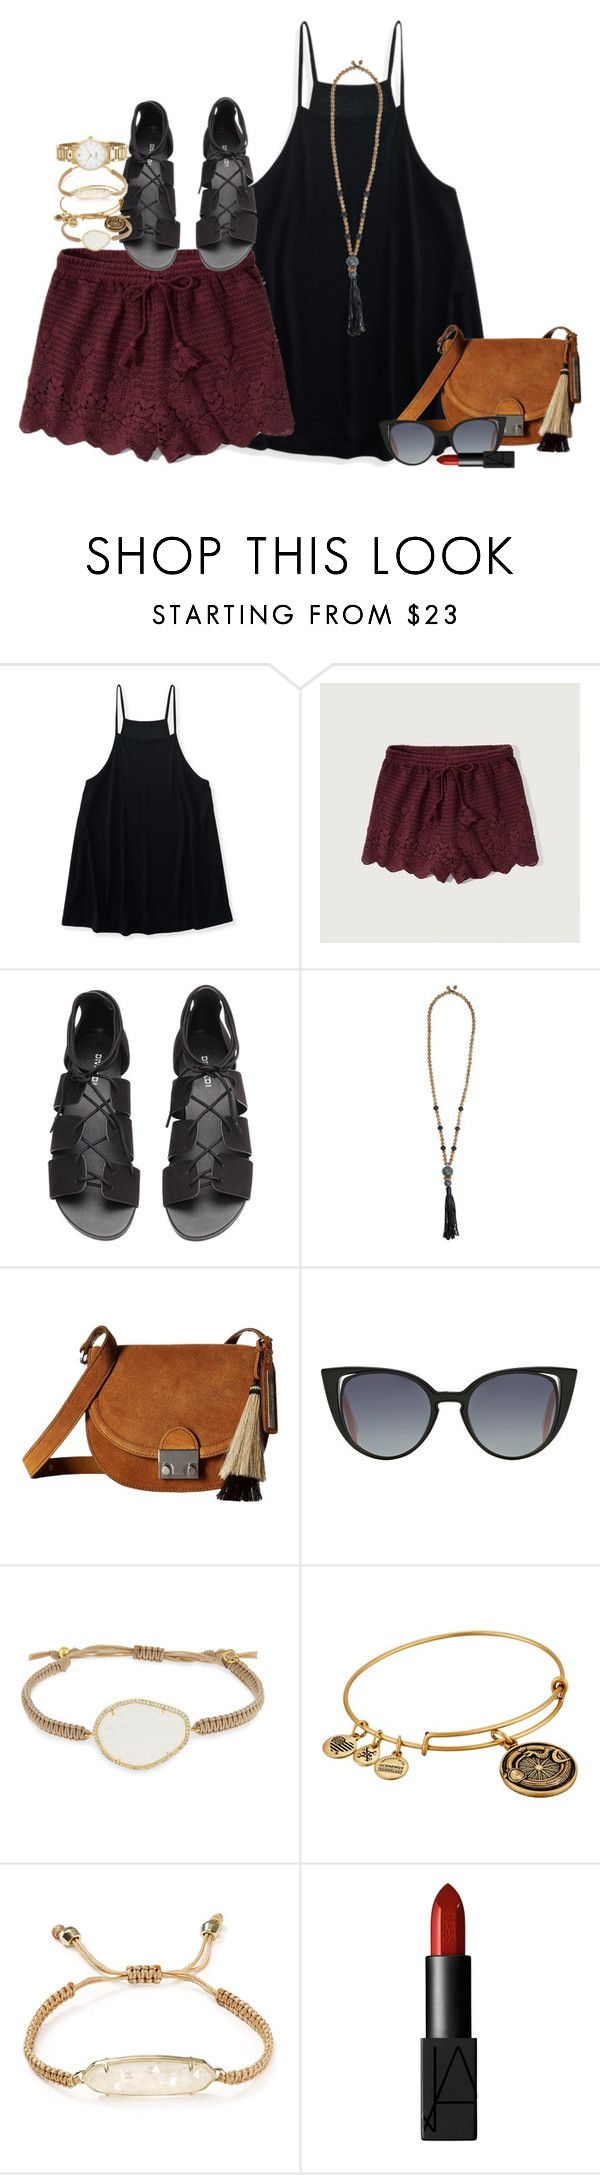 """""""something different"""" by smbprep ❤ liked on Polyvore featuring Aéropostale, Abercrombie & Fitch, H&M, Zeus+Dione, Loeffler Randall, Fendi, Tai, Alex and Ani, Kendra Scott and NARS Cosmetics"""